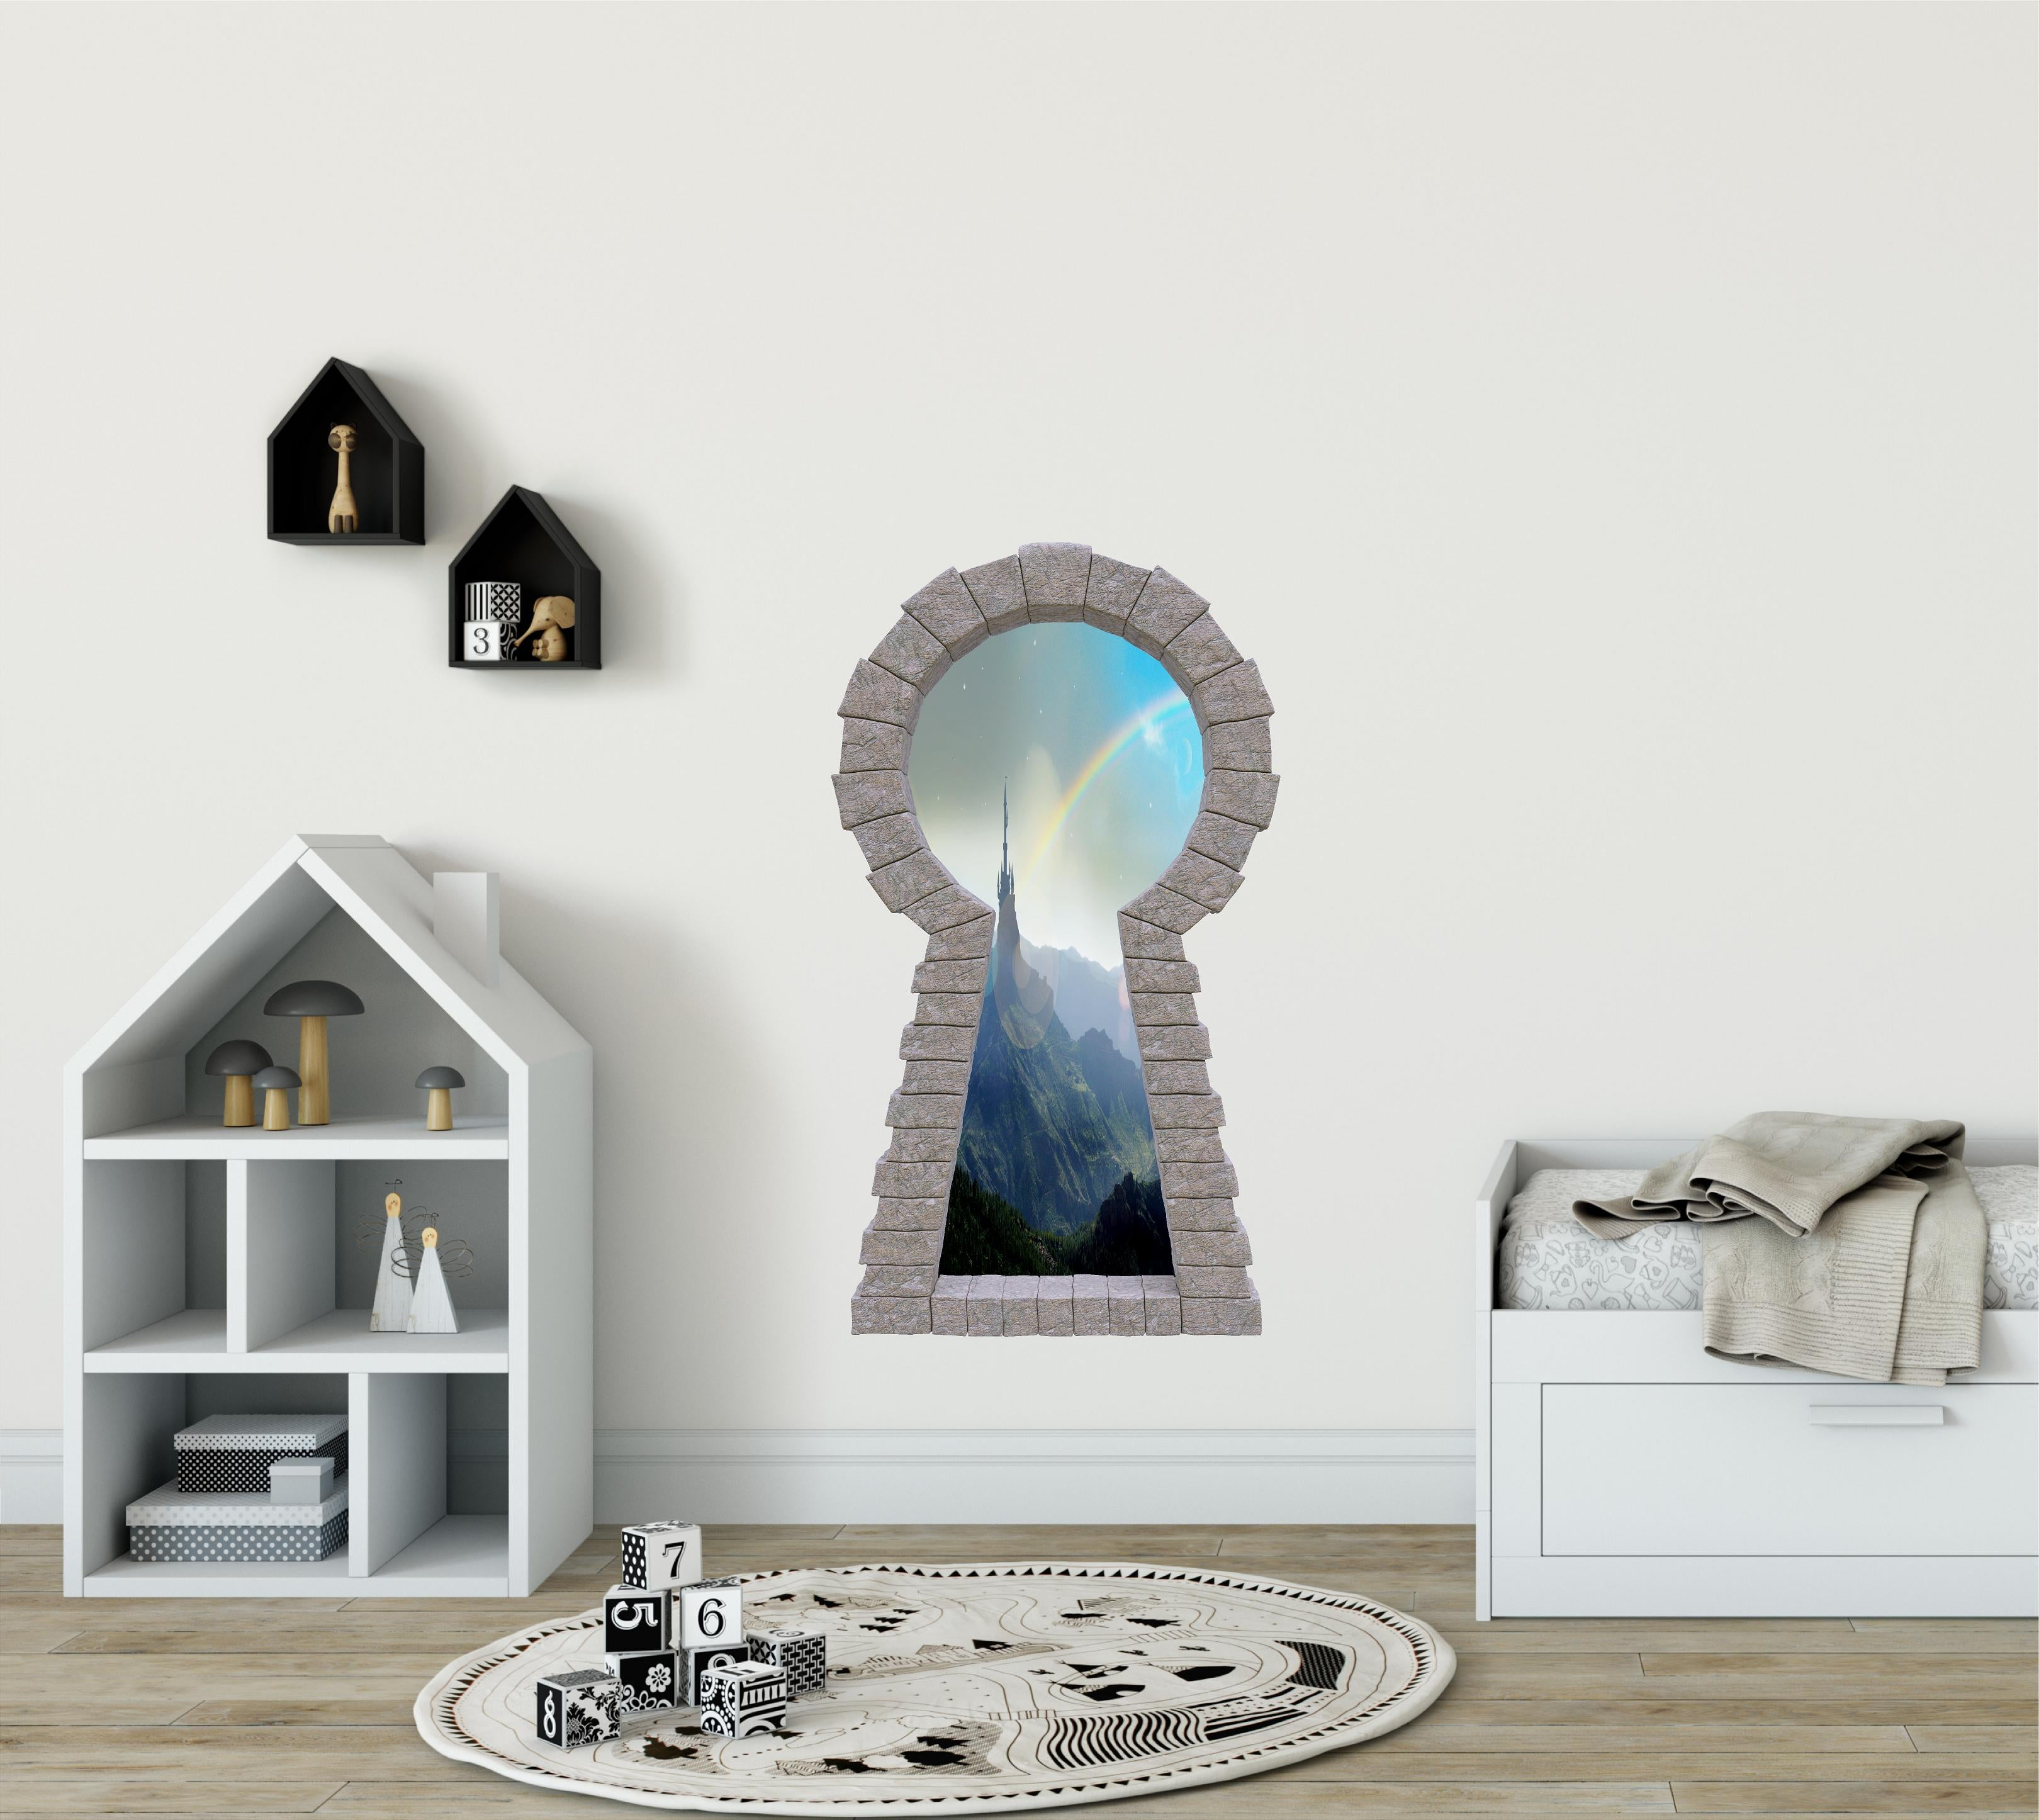 3D Stone Keyhole Wall Decal Rainbow Over Castle Tower Brick Window Enchanted Princess Fantasy Wall Art Removable Wall Sticker | DecalBaby